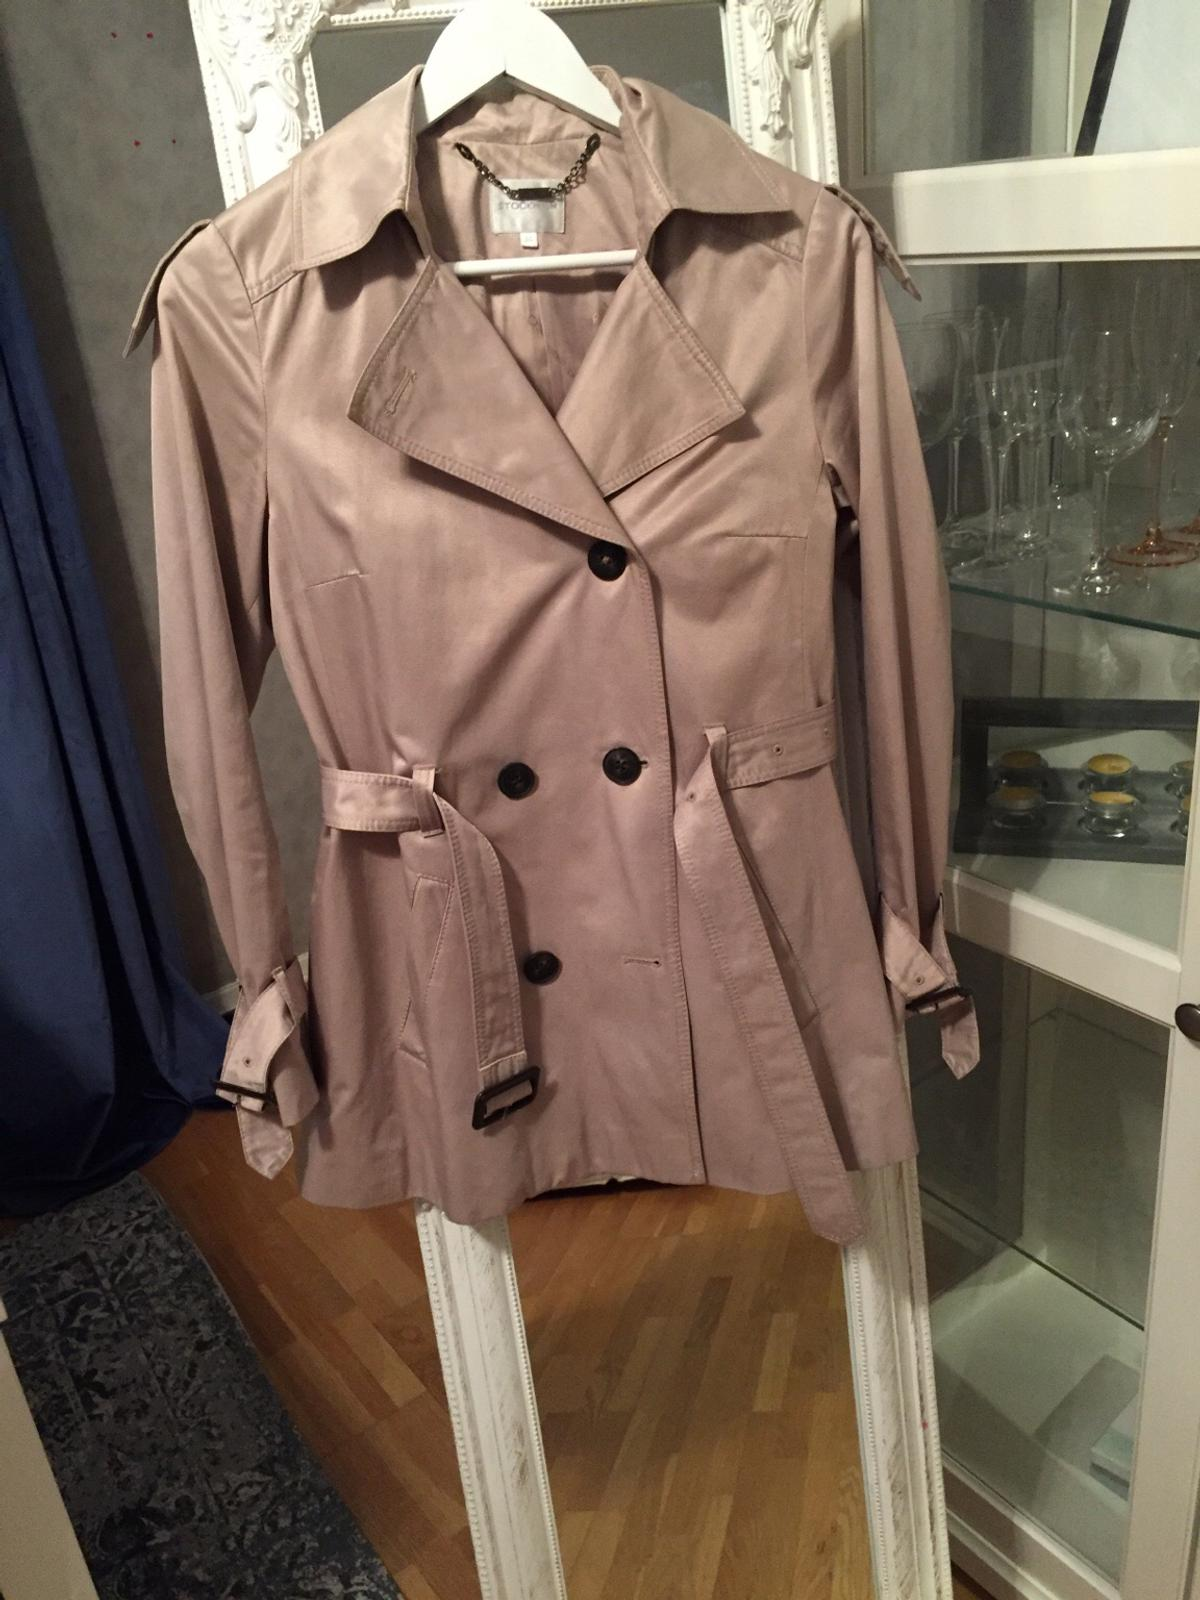 fa7c67231d76 Trenchcoat MQ STOCKH LM in 123 56 Stockholm for SEK 300.00 for sale ...